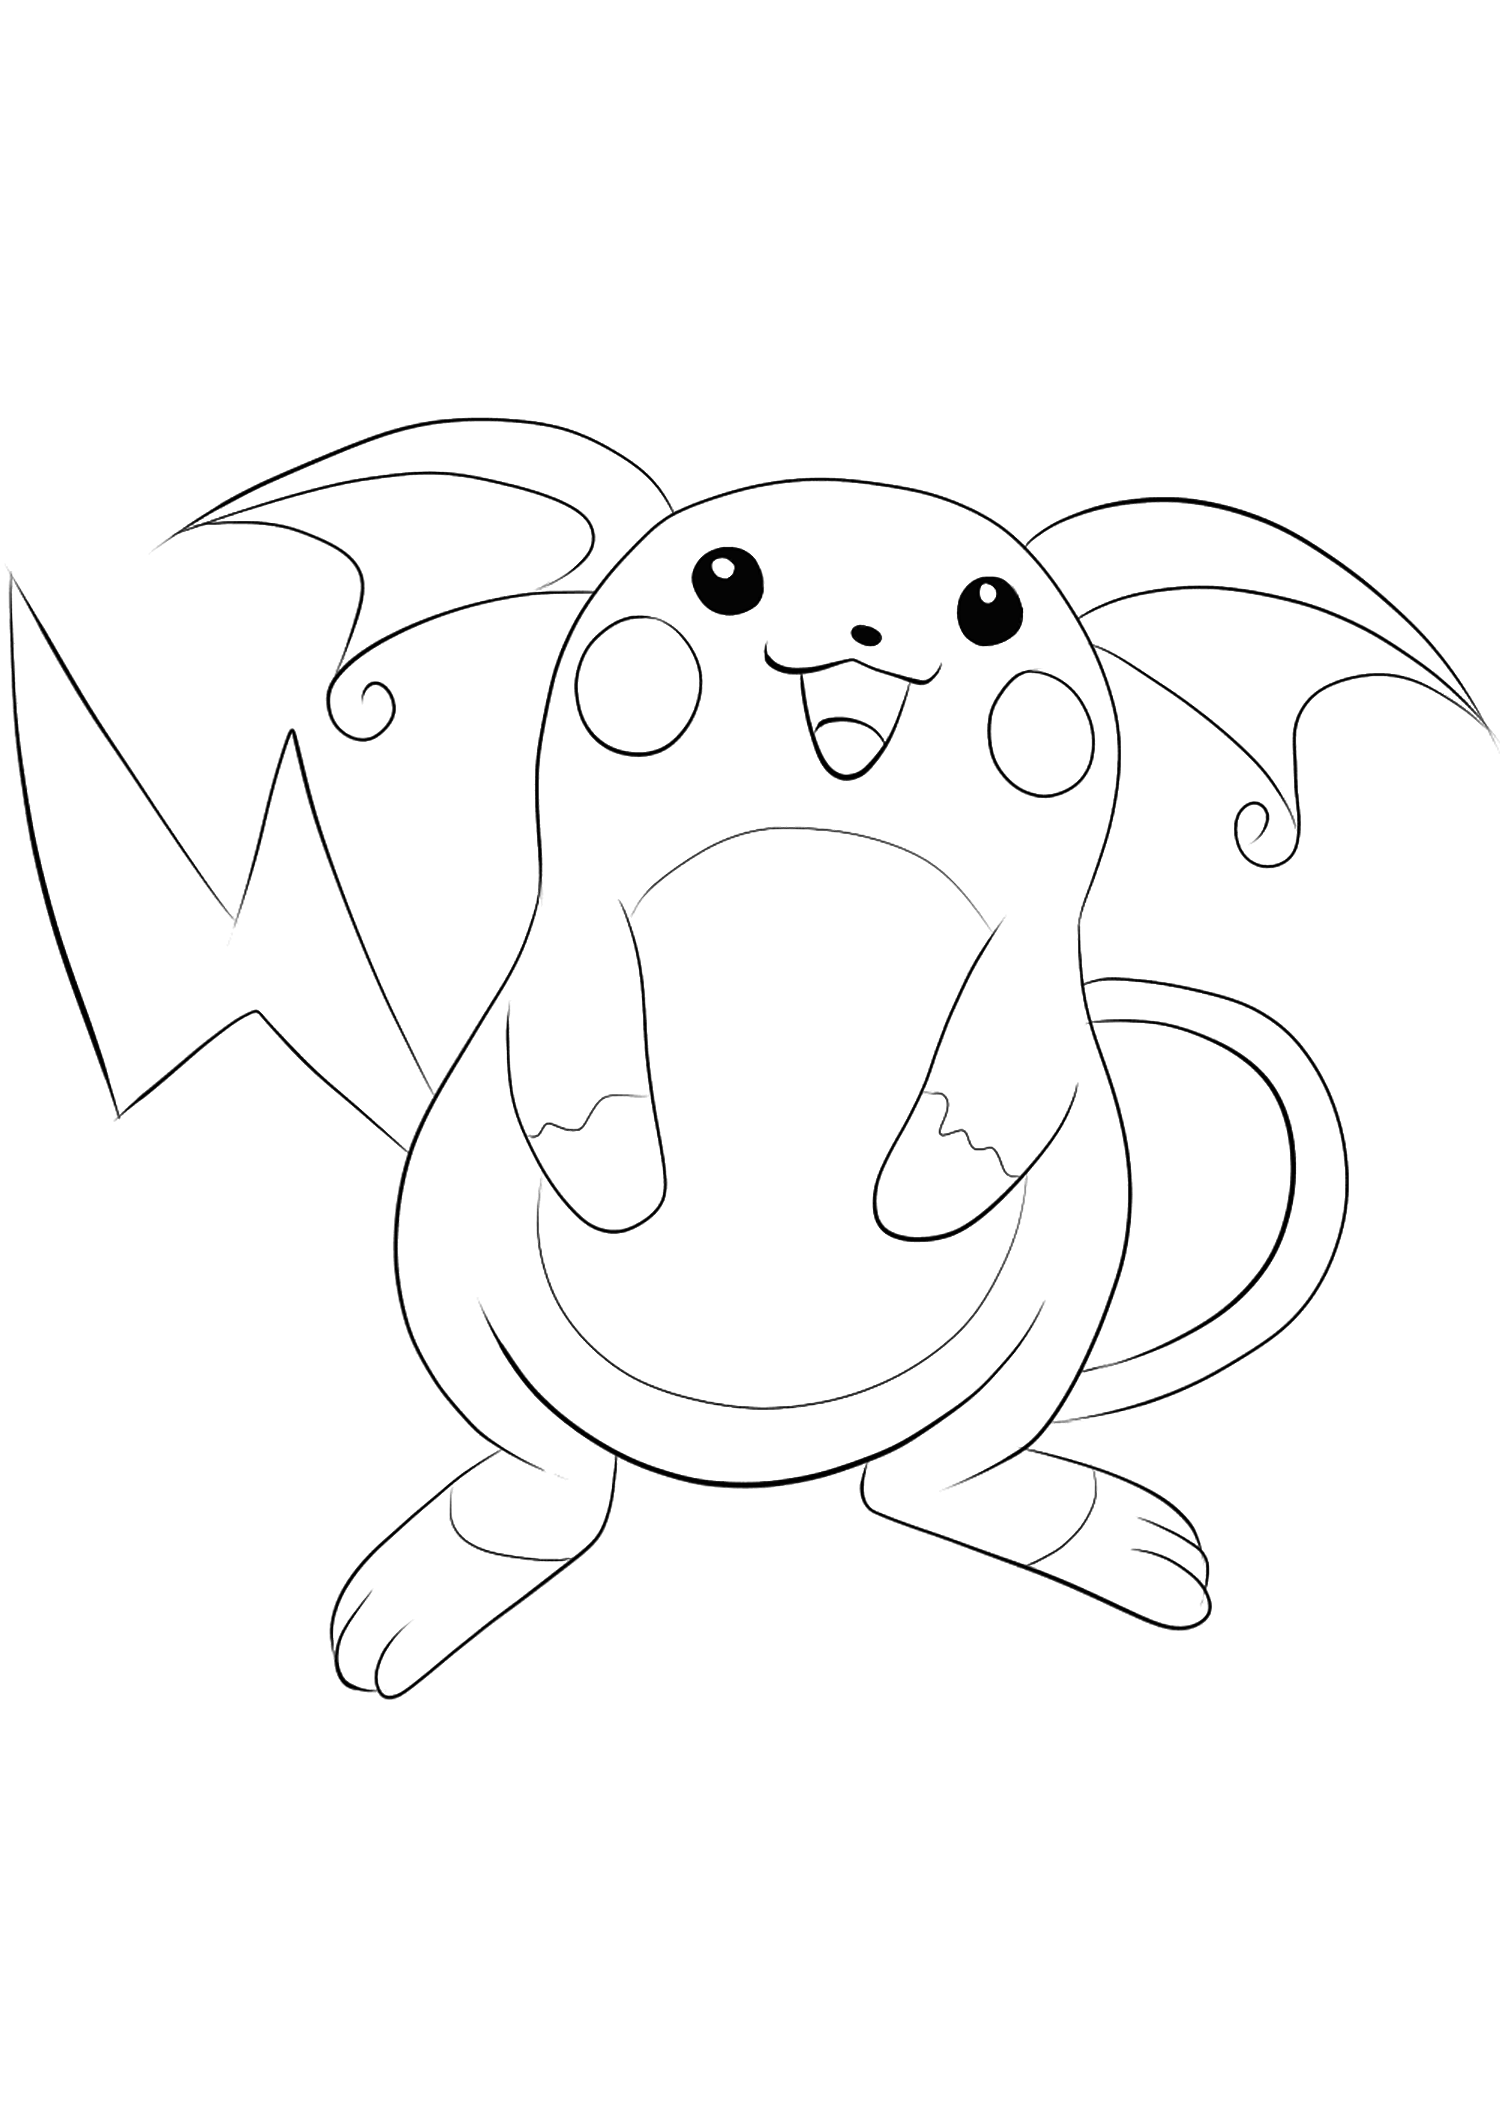 Raichu Pokemon Coloring Pages : raichu, pokemon, coloring, pages, Raichu, No.26, Pokemon, Generation, Coloring, Pages